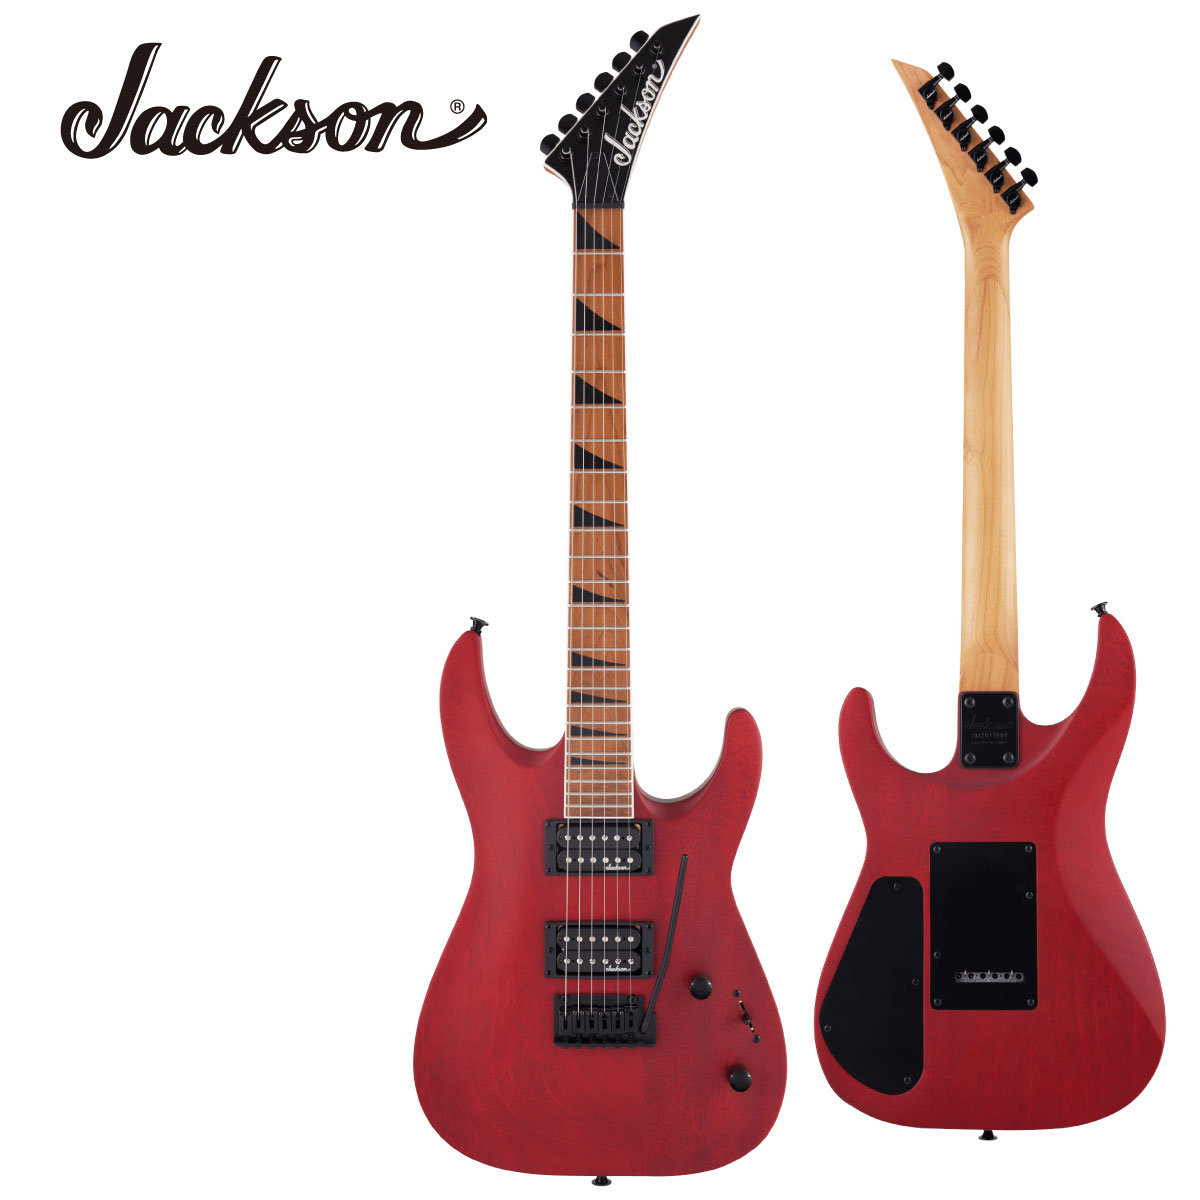 Jackson JS Series Dinky 新作アイテム毎日更新 Arch Top JS24 DKAM -Red 待望 Stain- Guitar エレキギター 赤 新品 Electric レッド ジャクソン